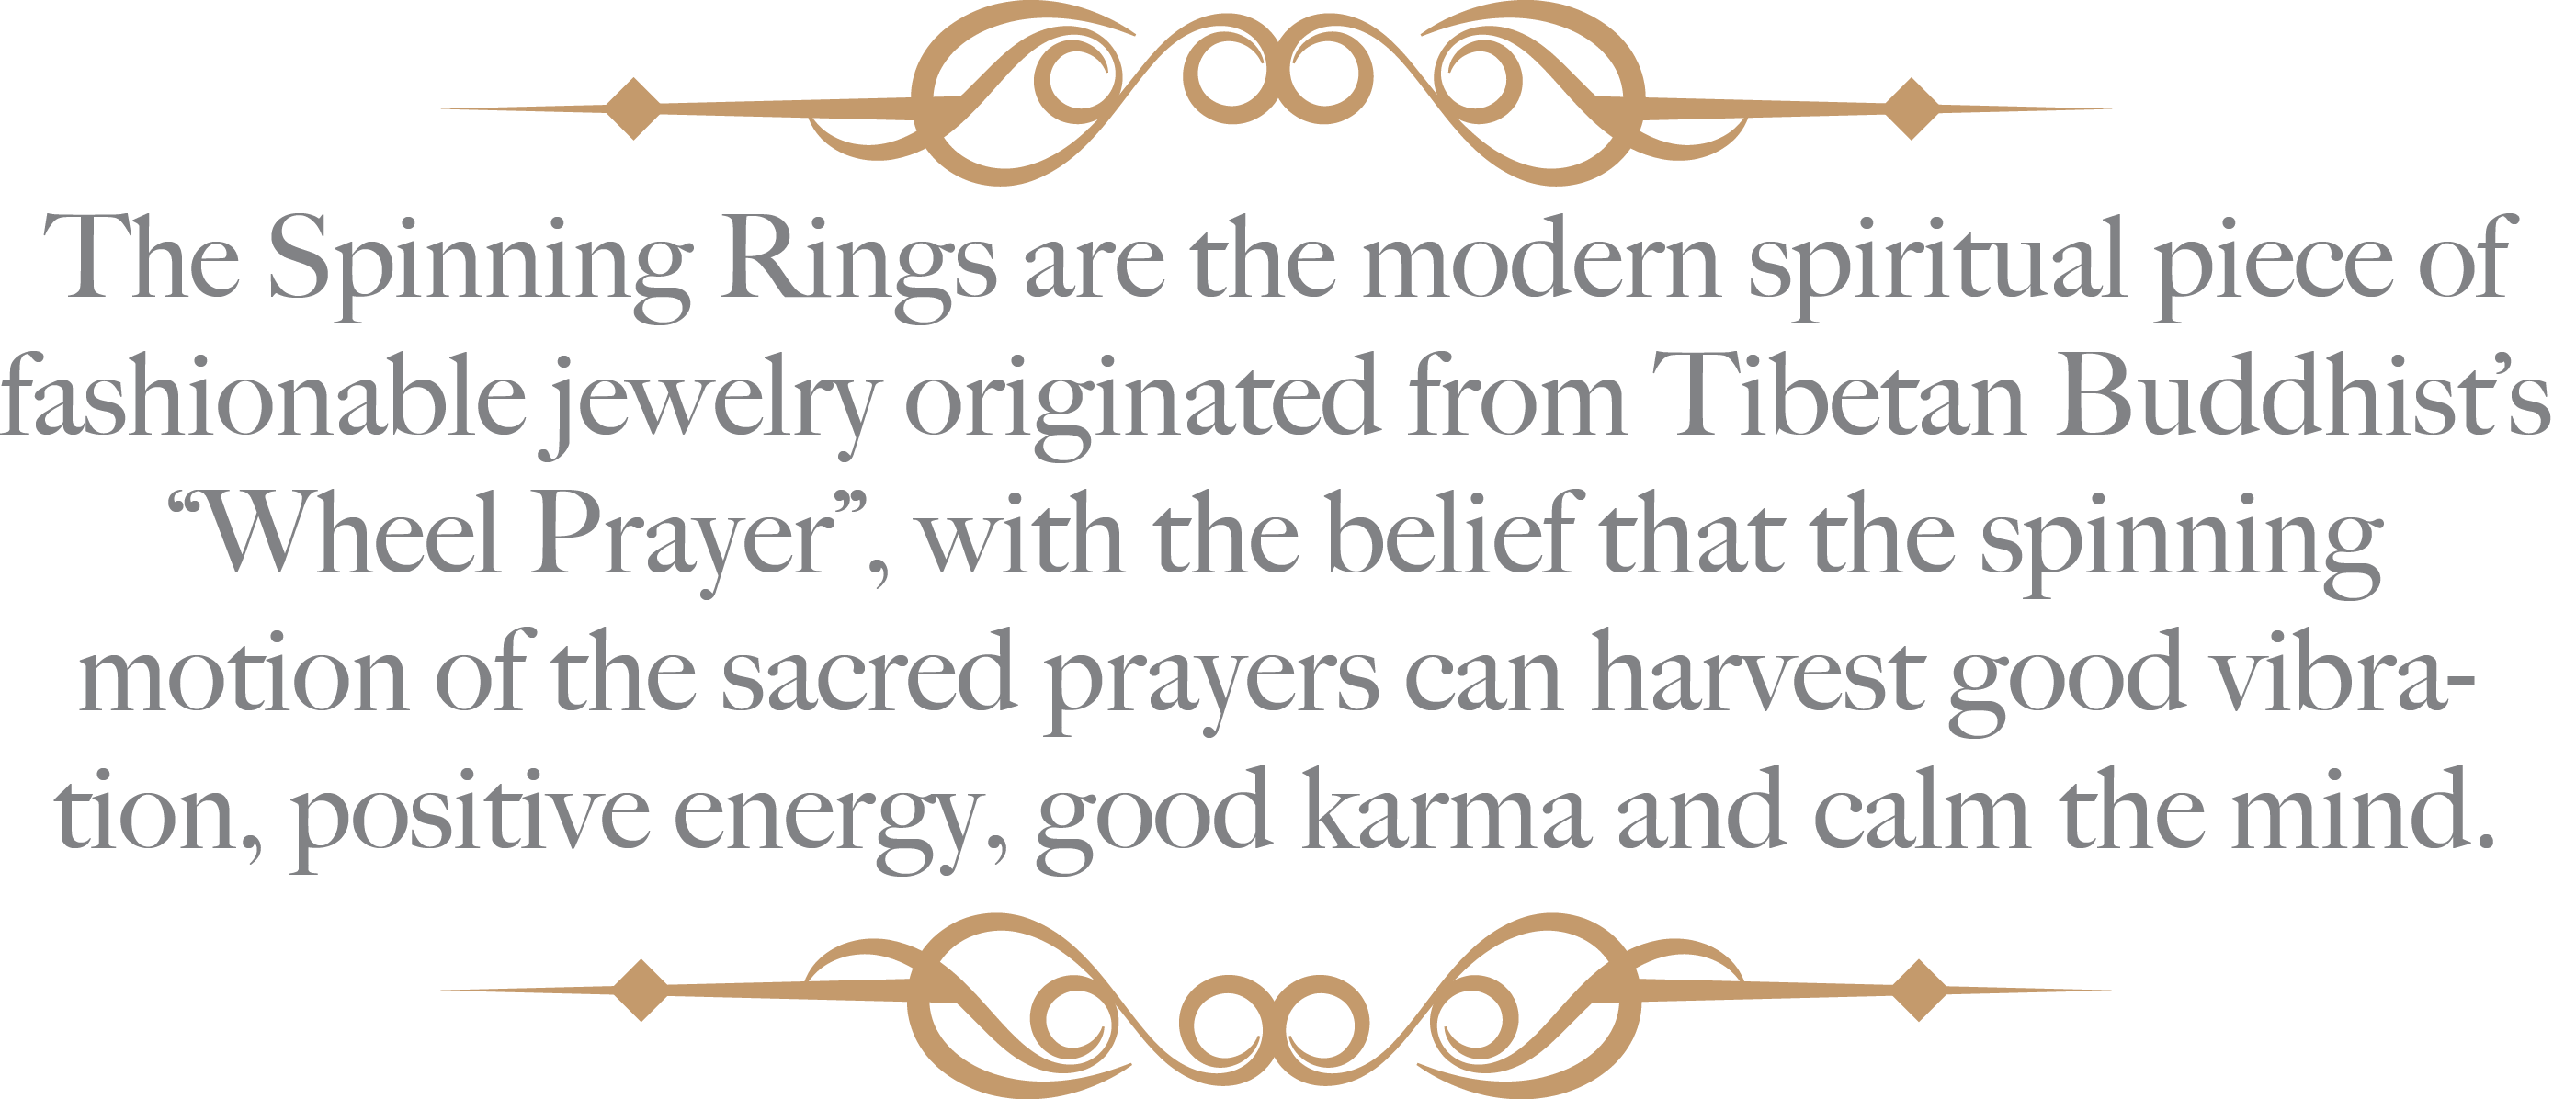 "The Spinning Rings are the modern spiritual piece of fashionable jewelry originated from Tibetan Buddhist's ""Wheel Prayer"", with the belief that the spinning motion of the sacred prayers can harvest good vibration, positive energy, good karma and calm the mind."